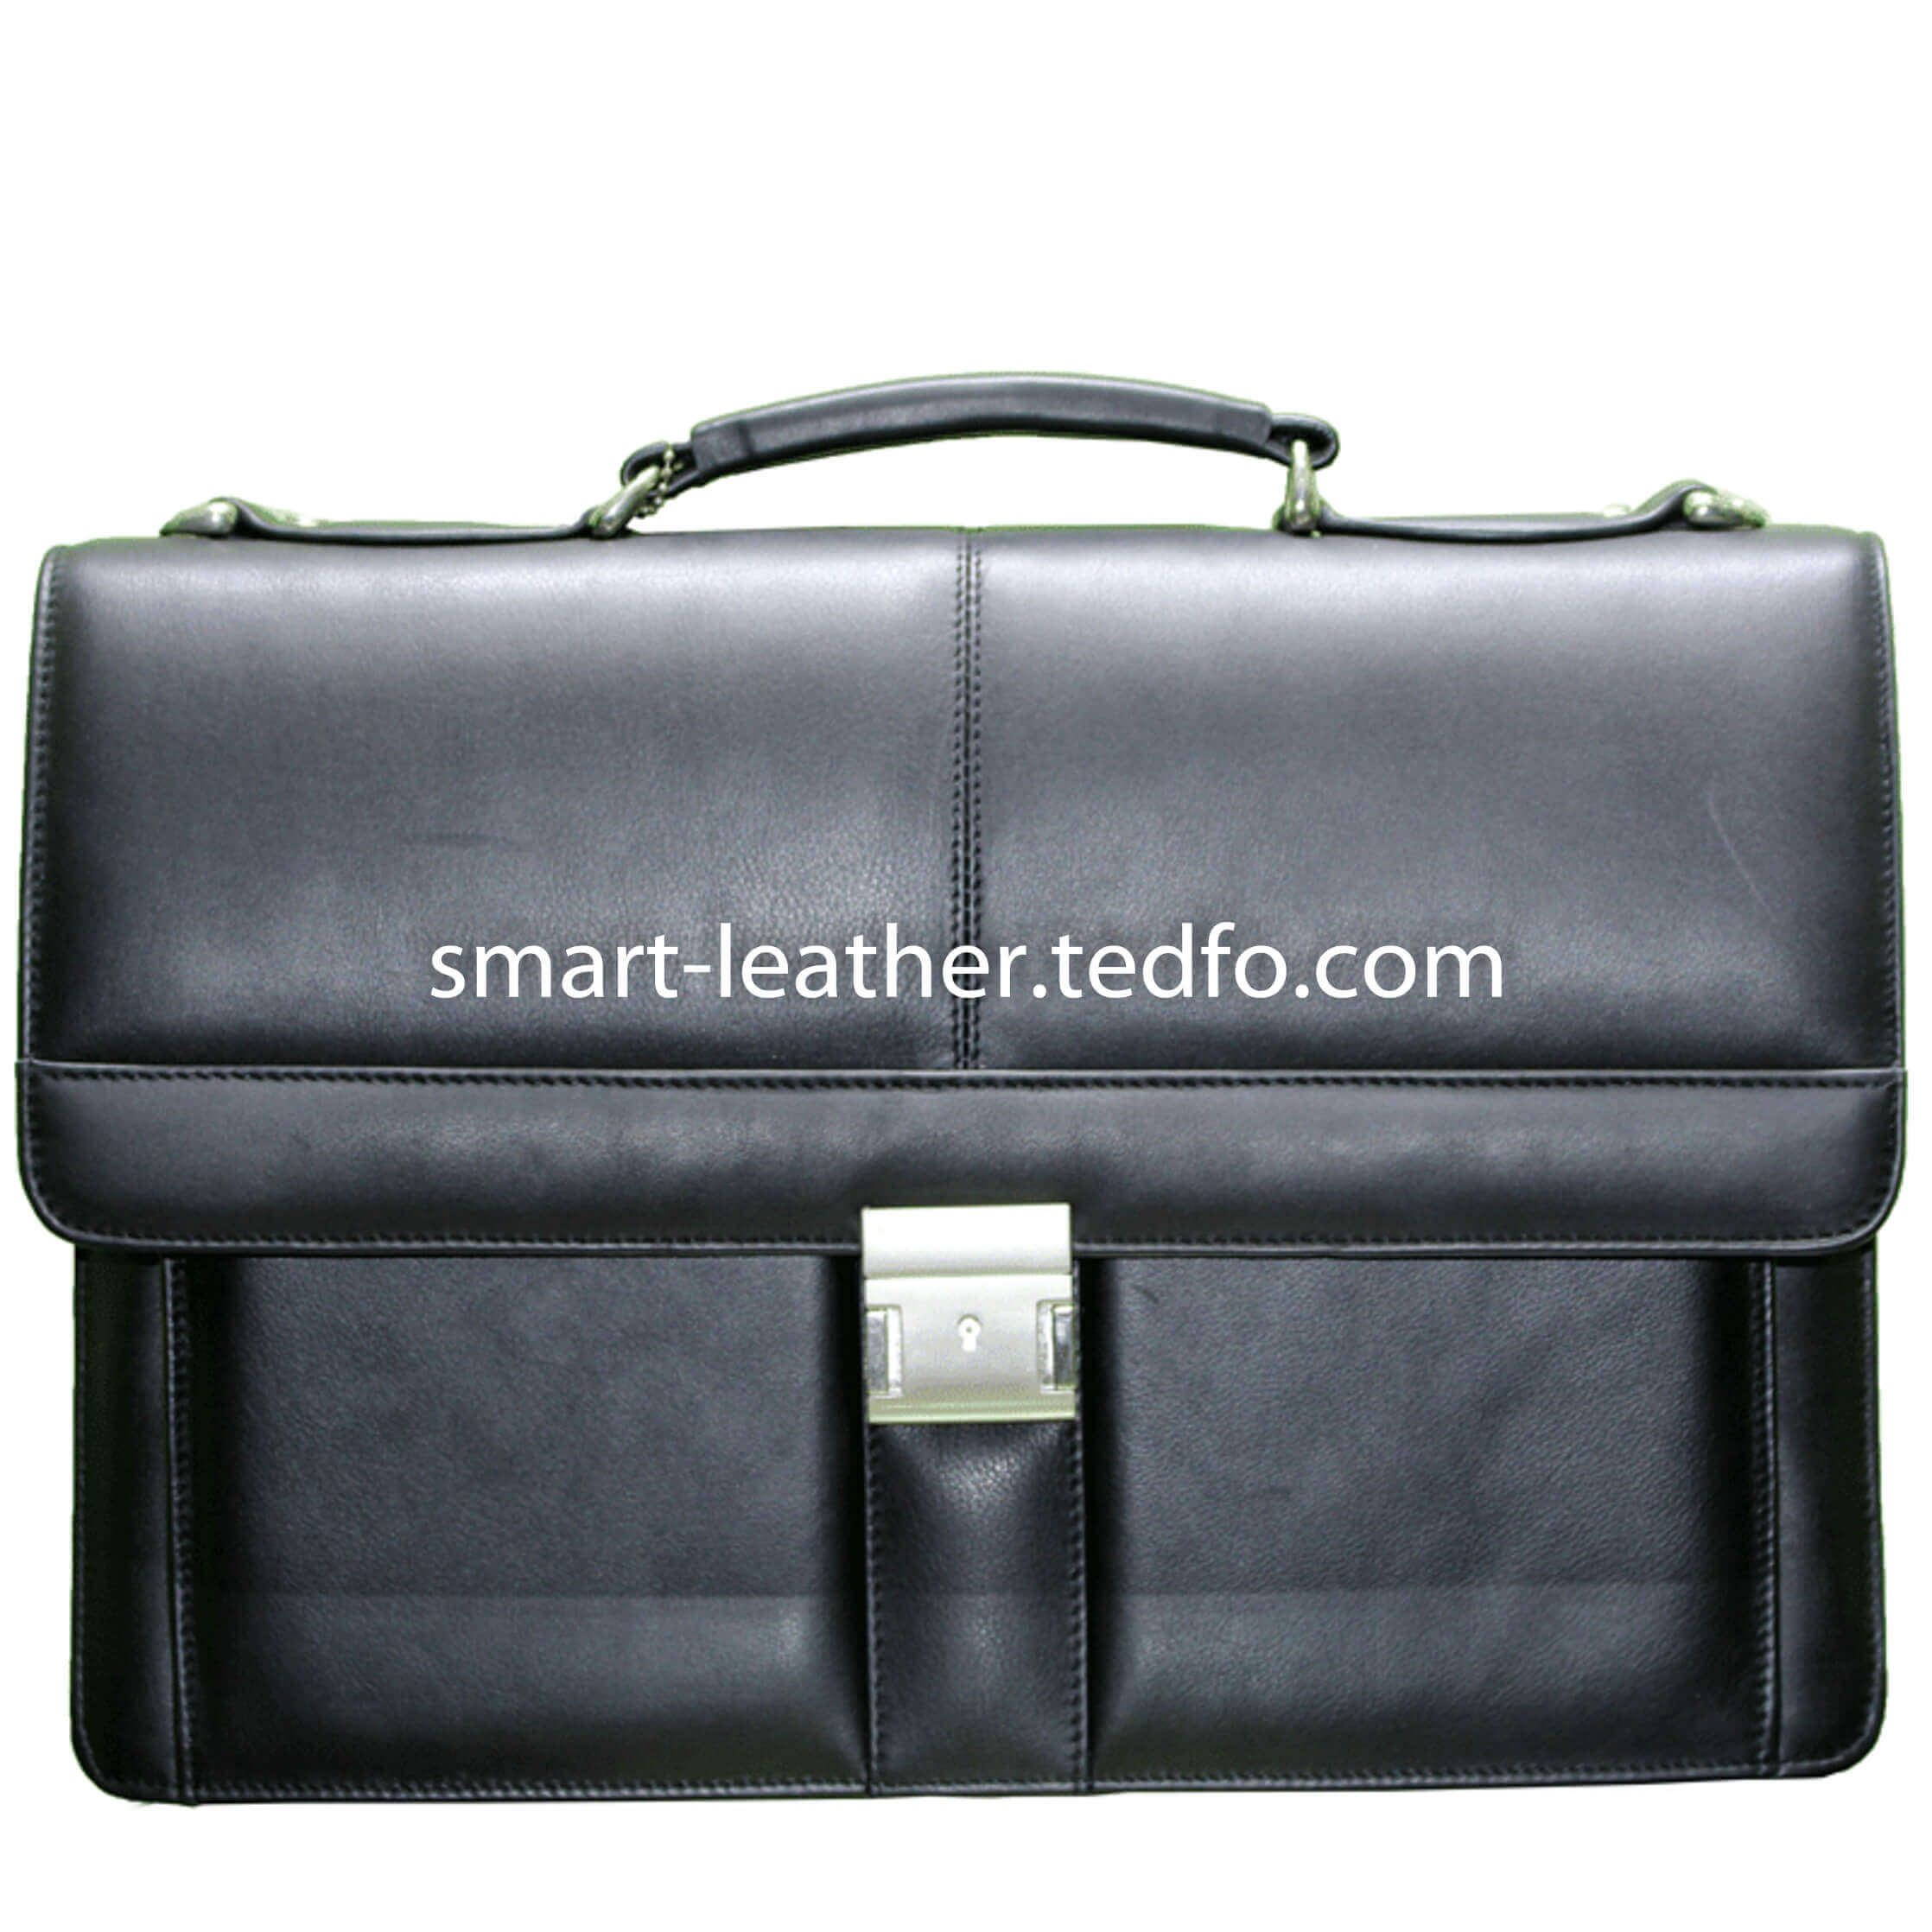 Stylish Leather Executive Bag Manufacturer and Exporter from Bangladesh